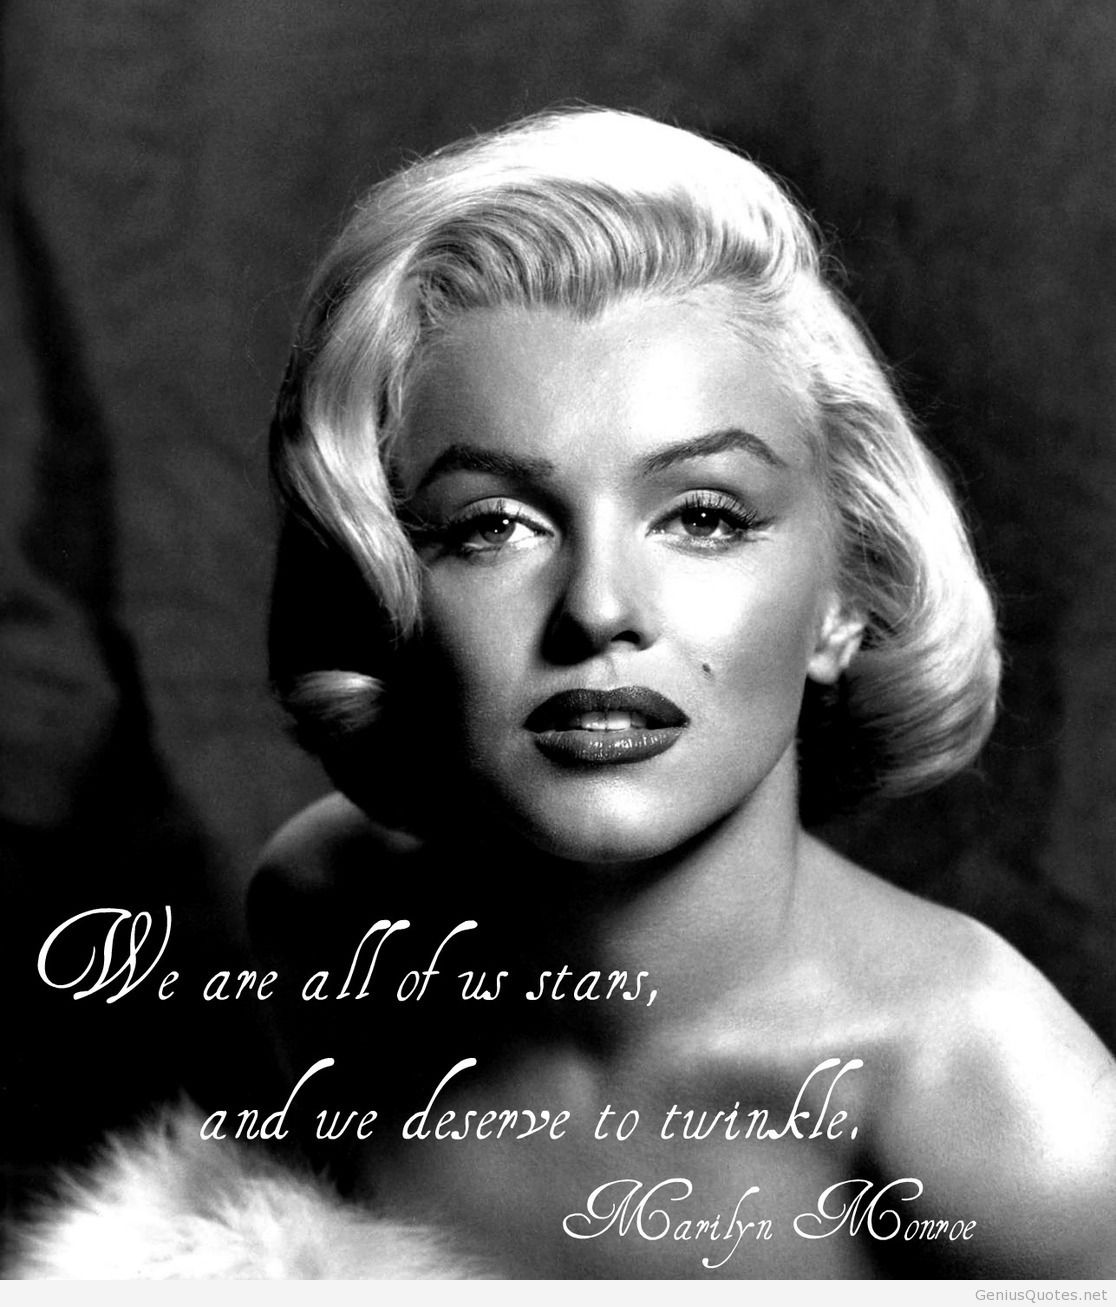 Marilyn Monroe Photos And Quotes: Marilyn Monroe Quotes Quotes. QuotesGram